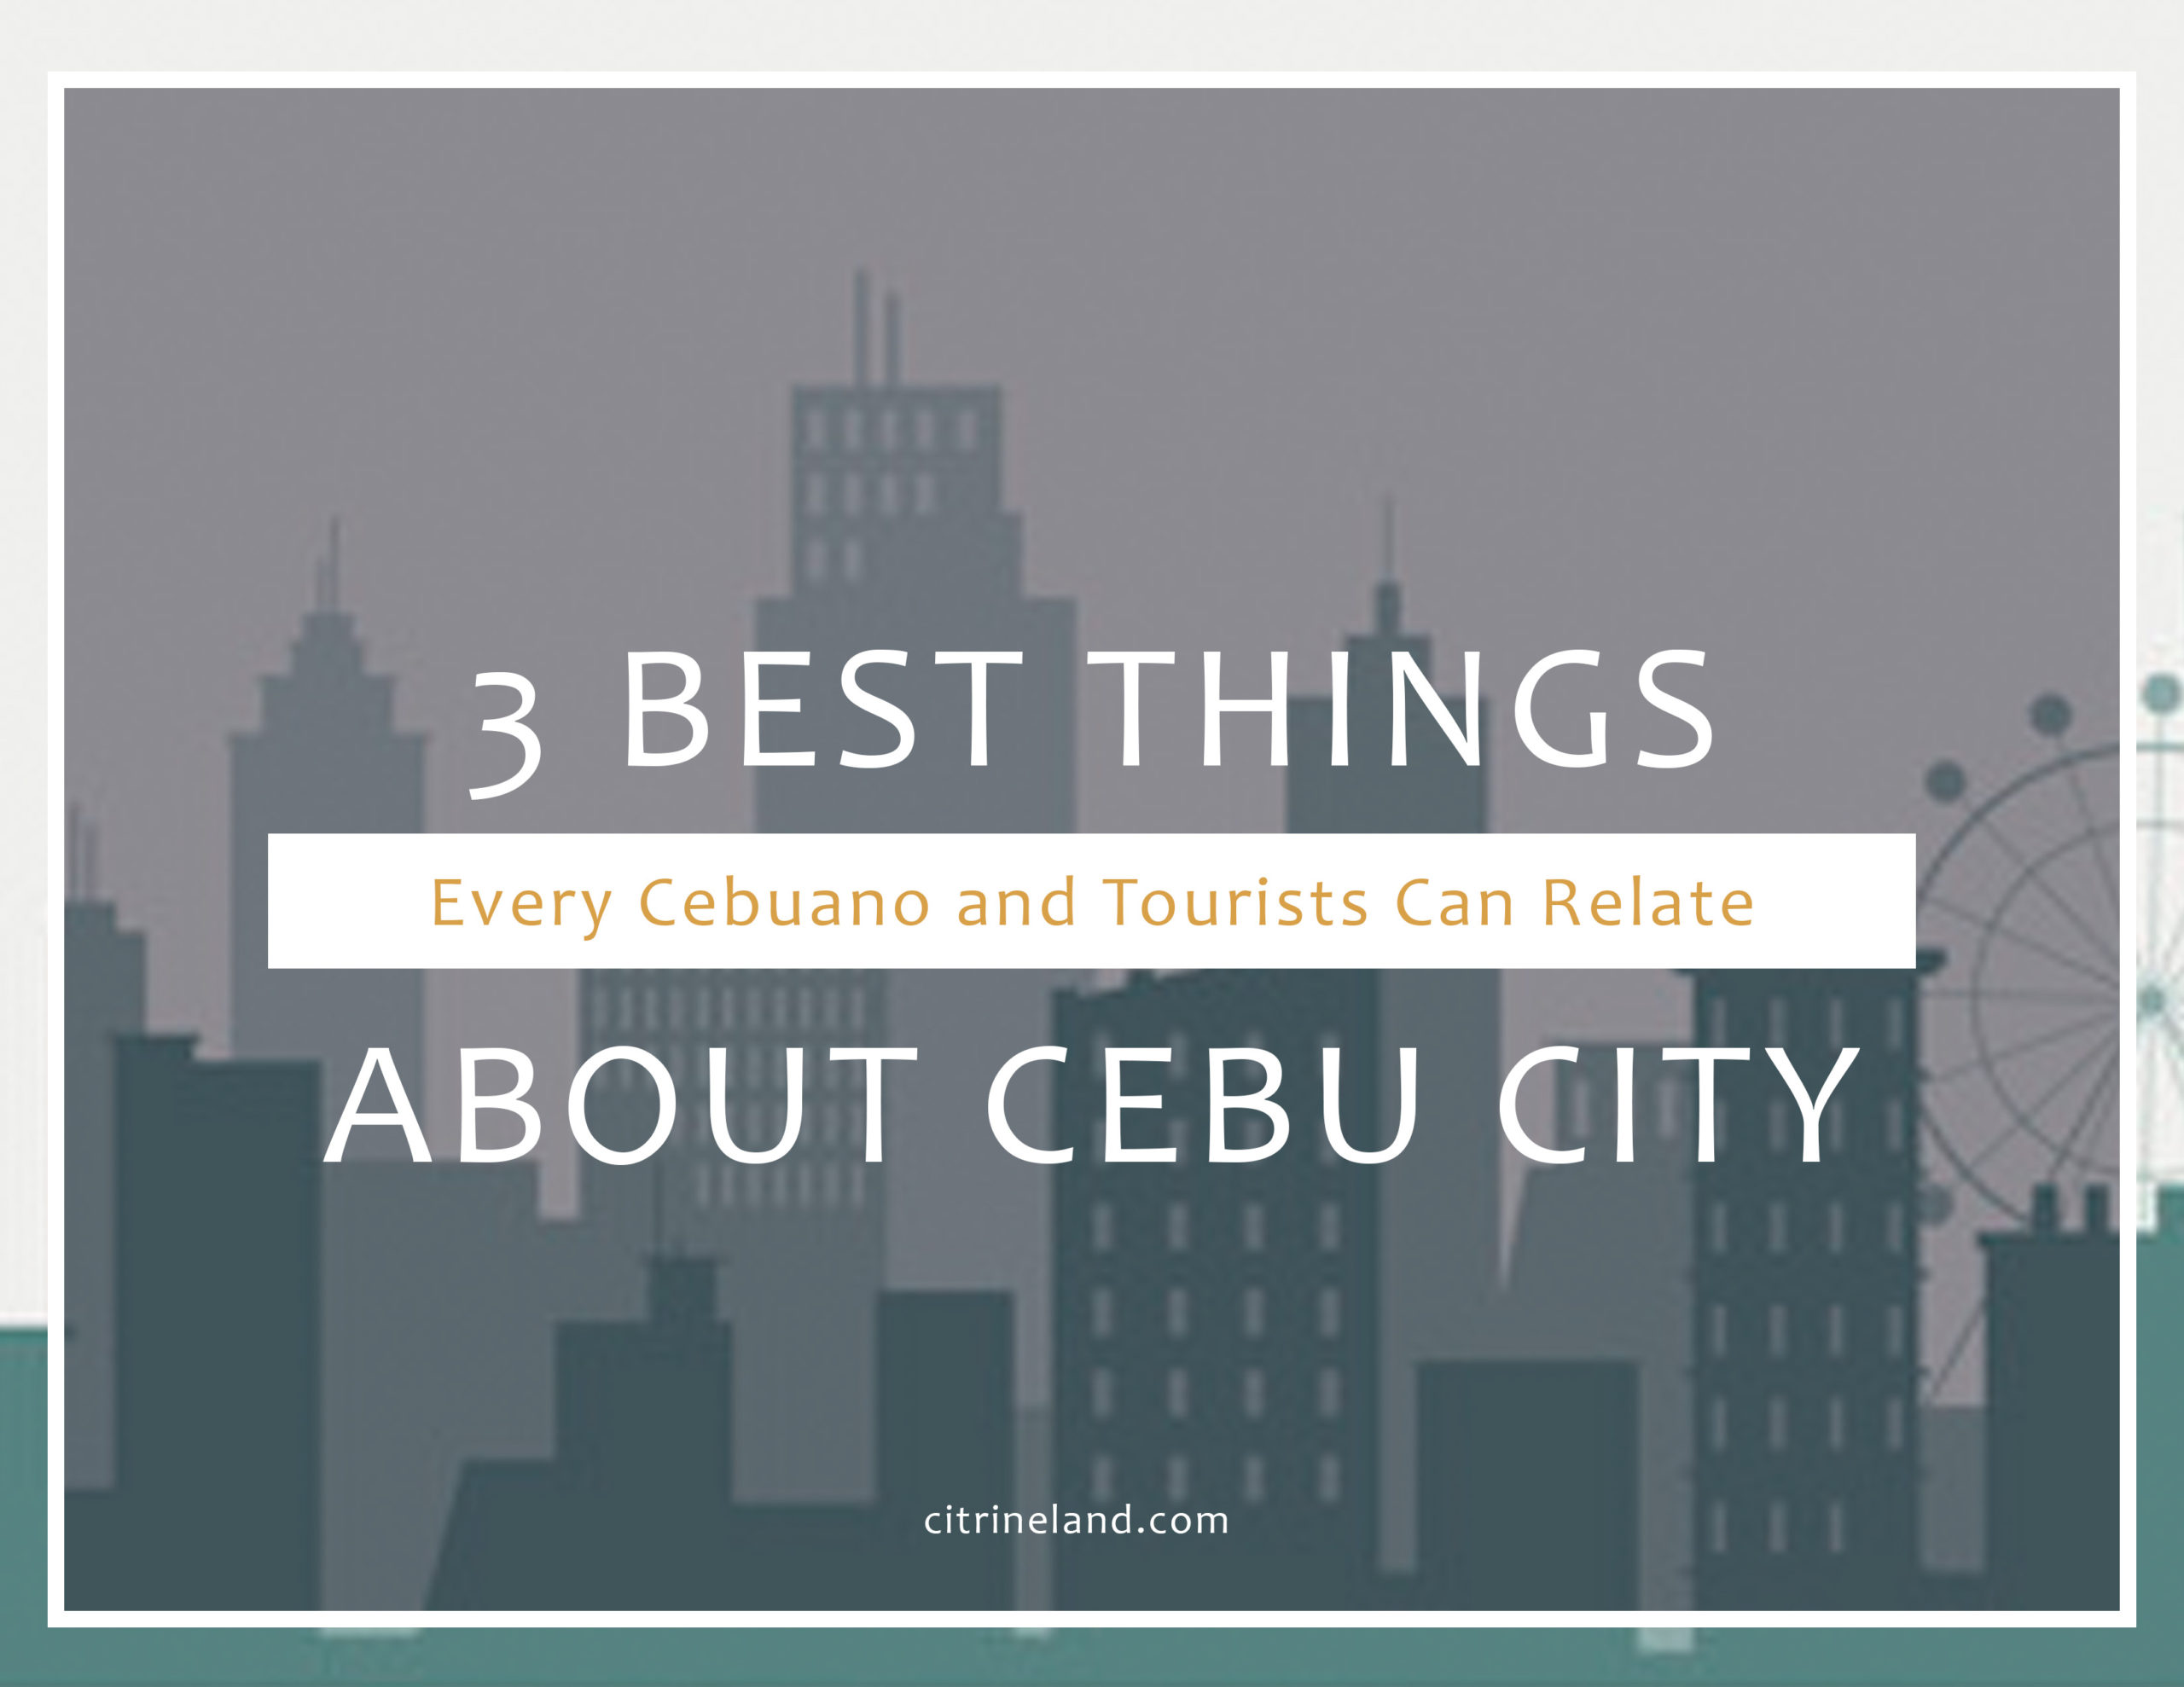 Cebu City: 3 Best Things That Every Cebuano Can Relate To